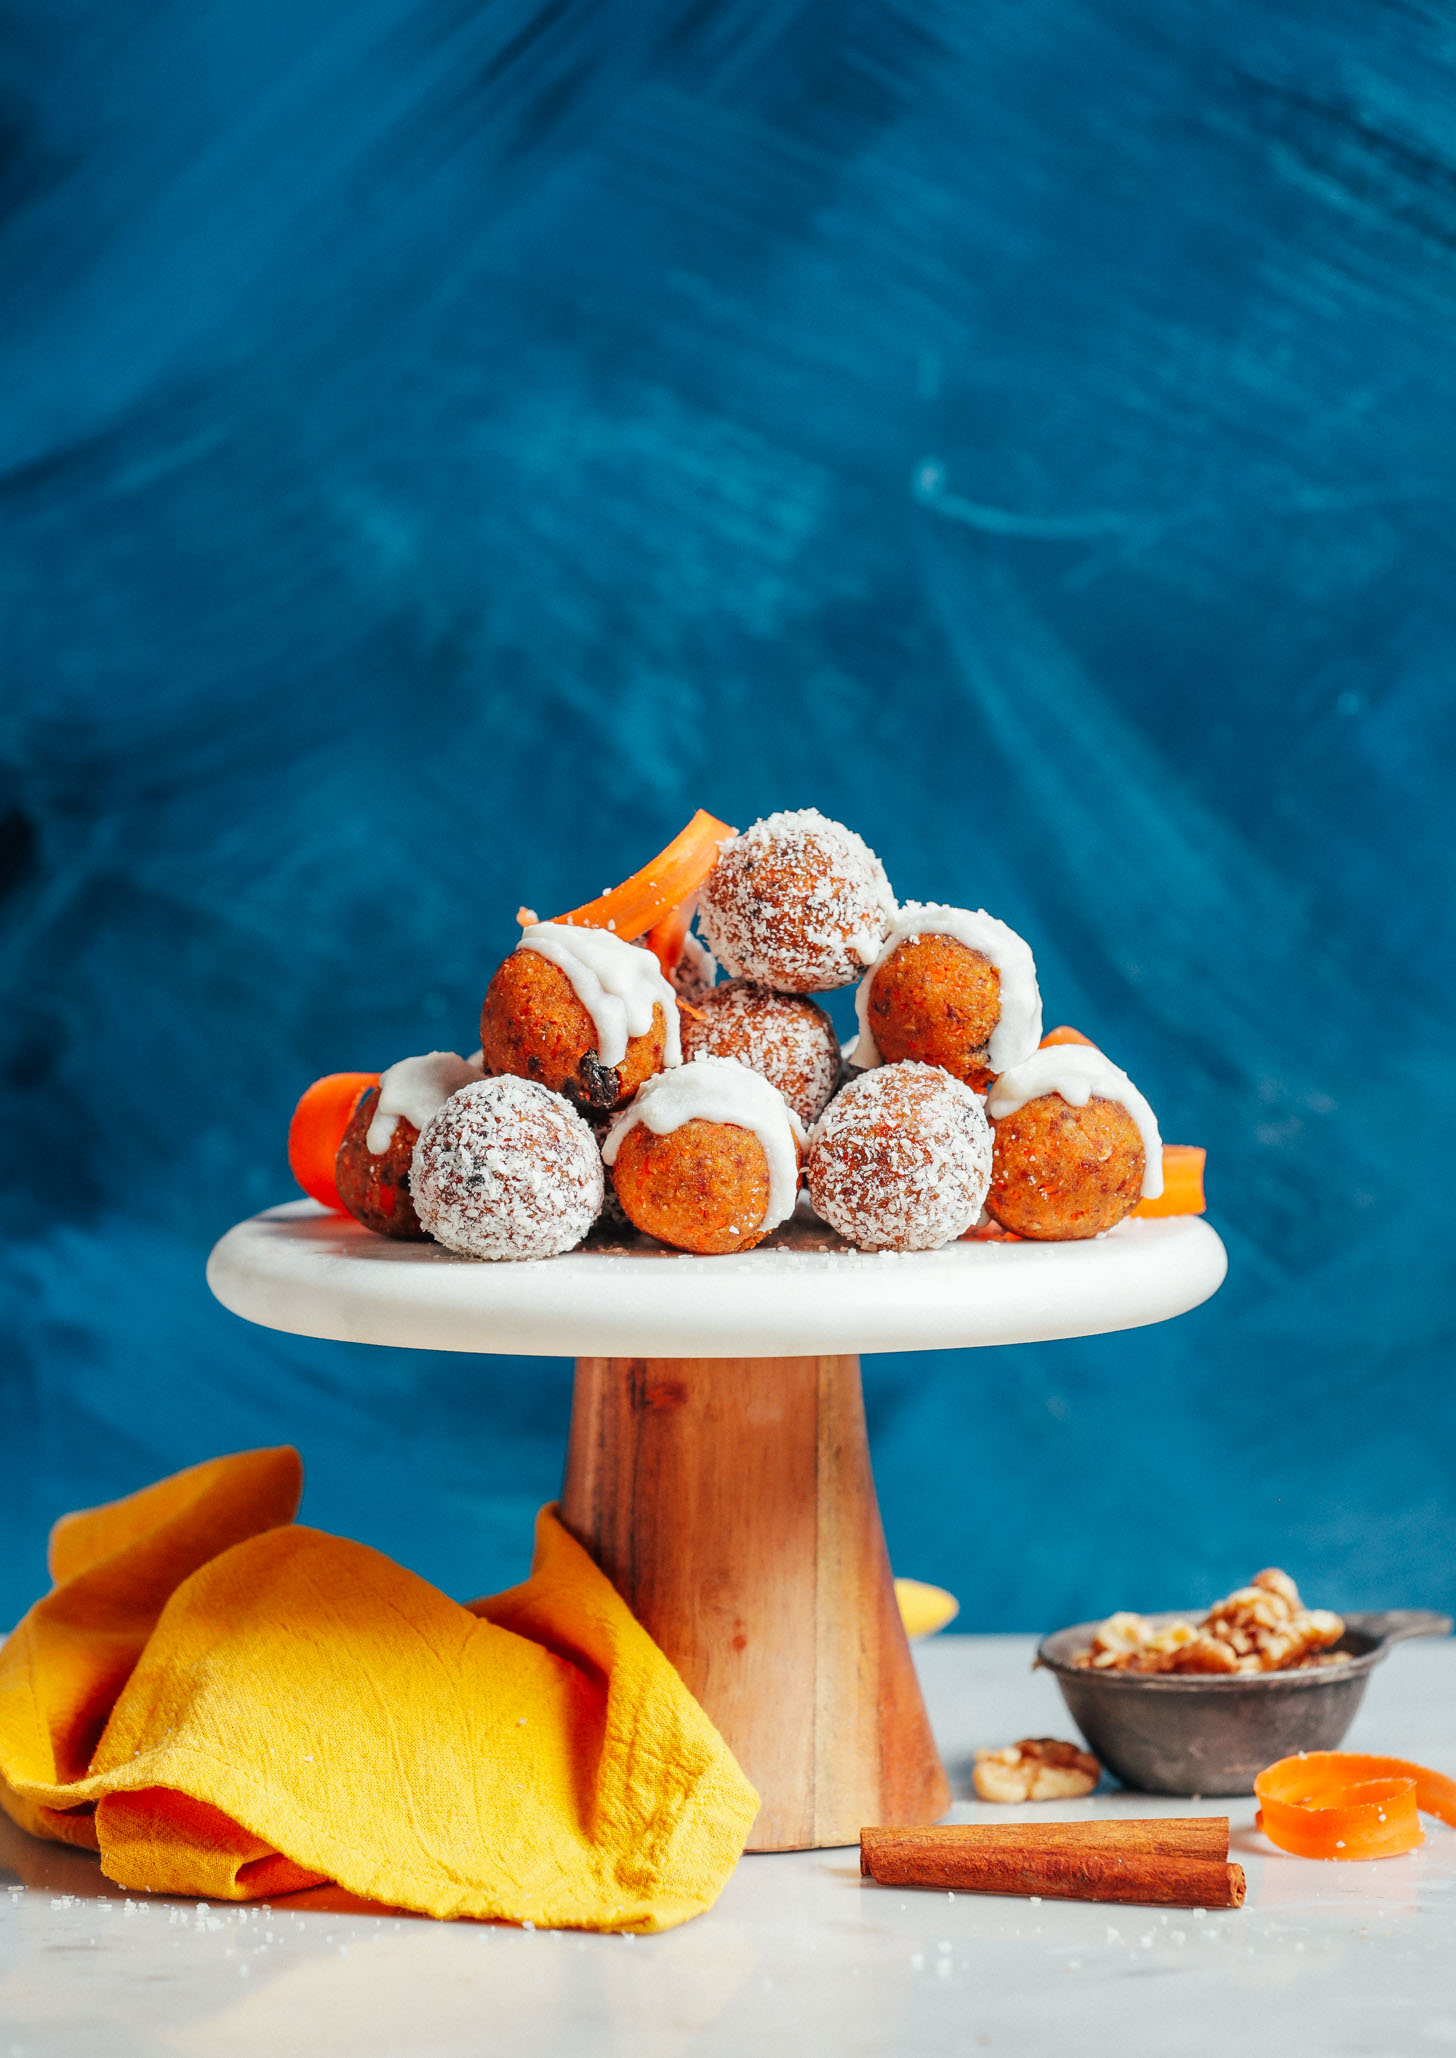 Raw Carrot Cake Bites resting on a cake platter